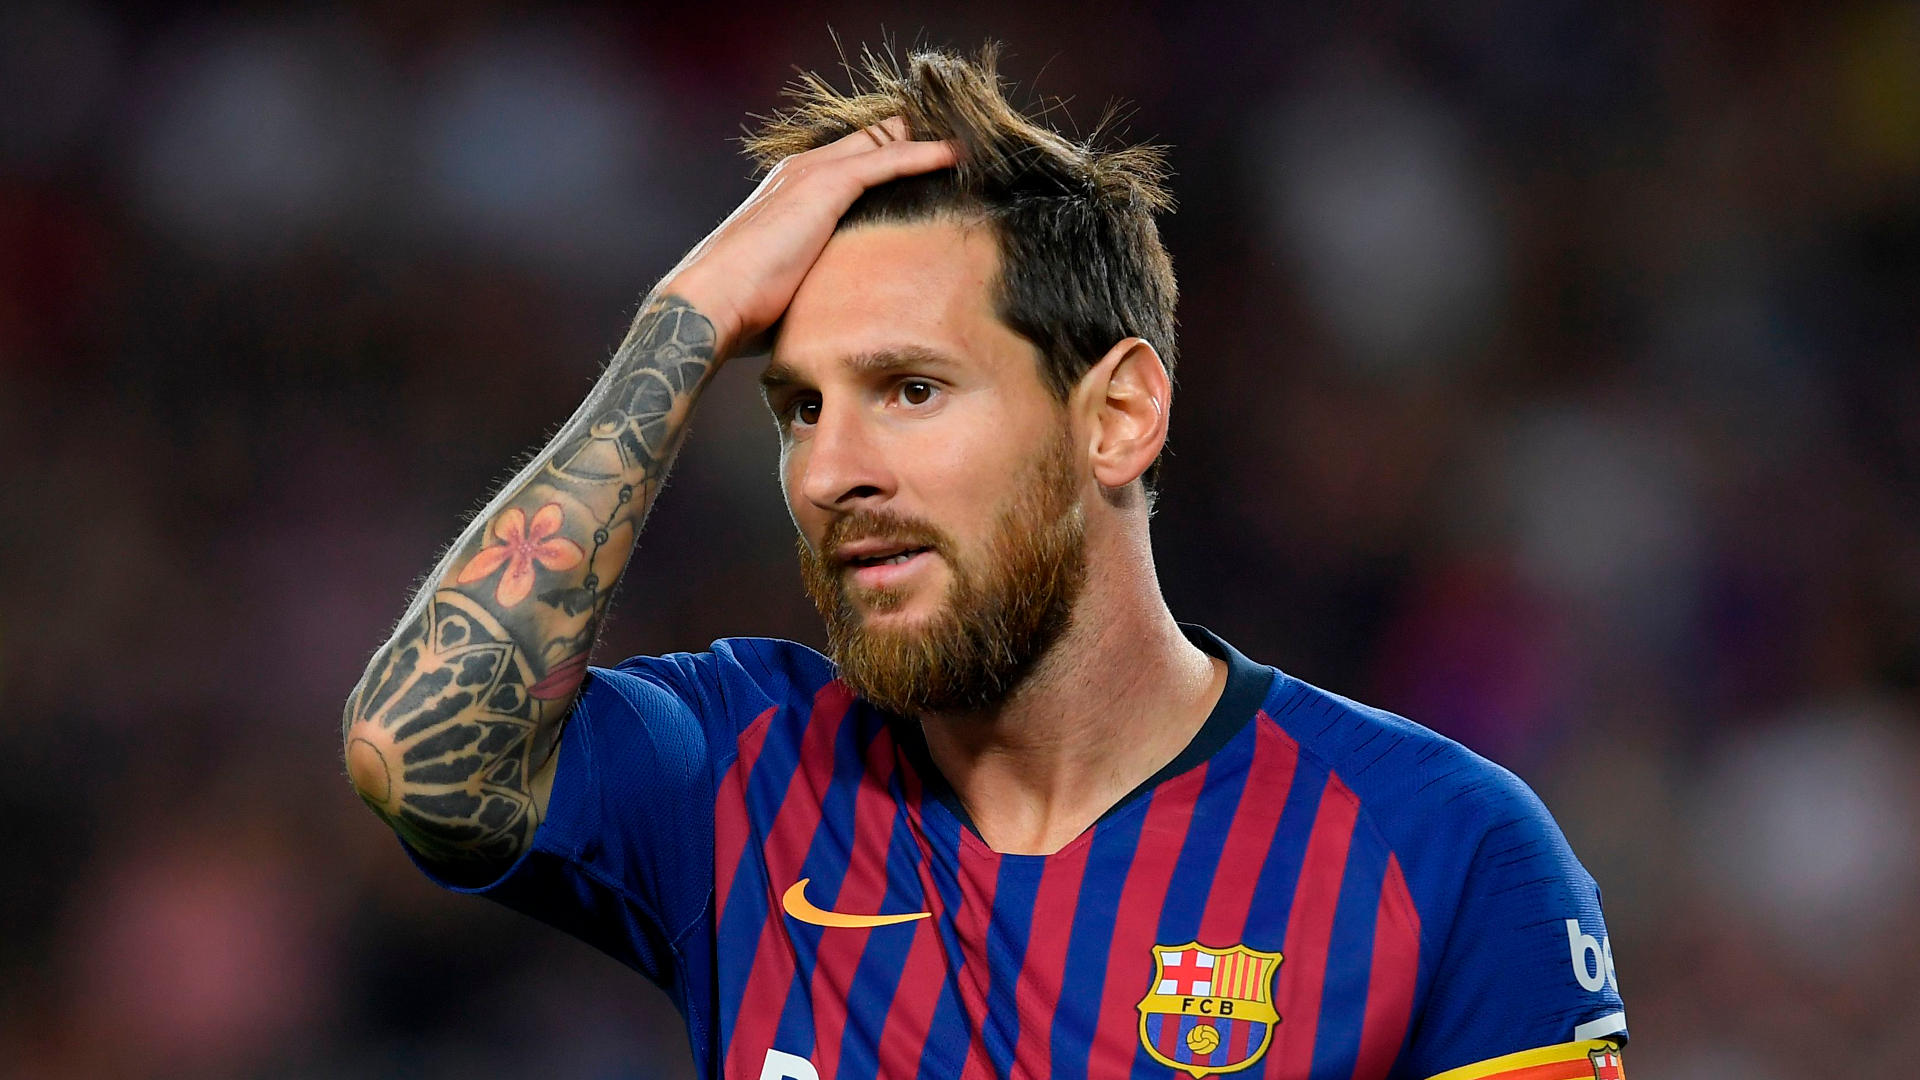 Messi decided to leave Barcelona after talk with new coach Koeman